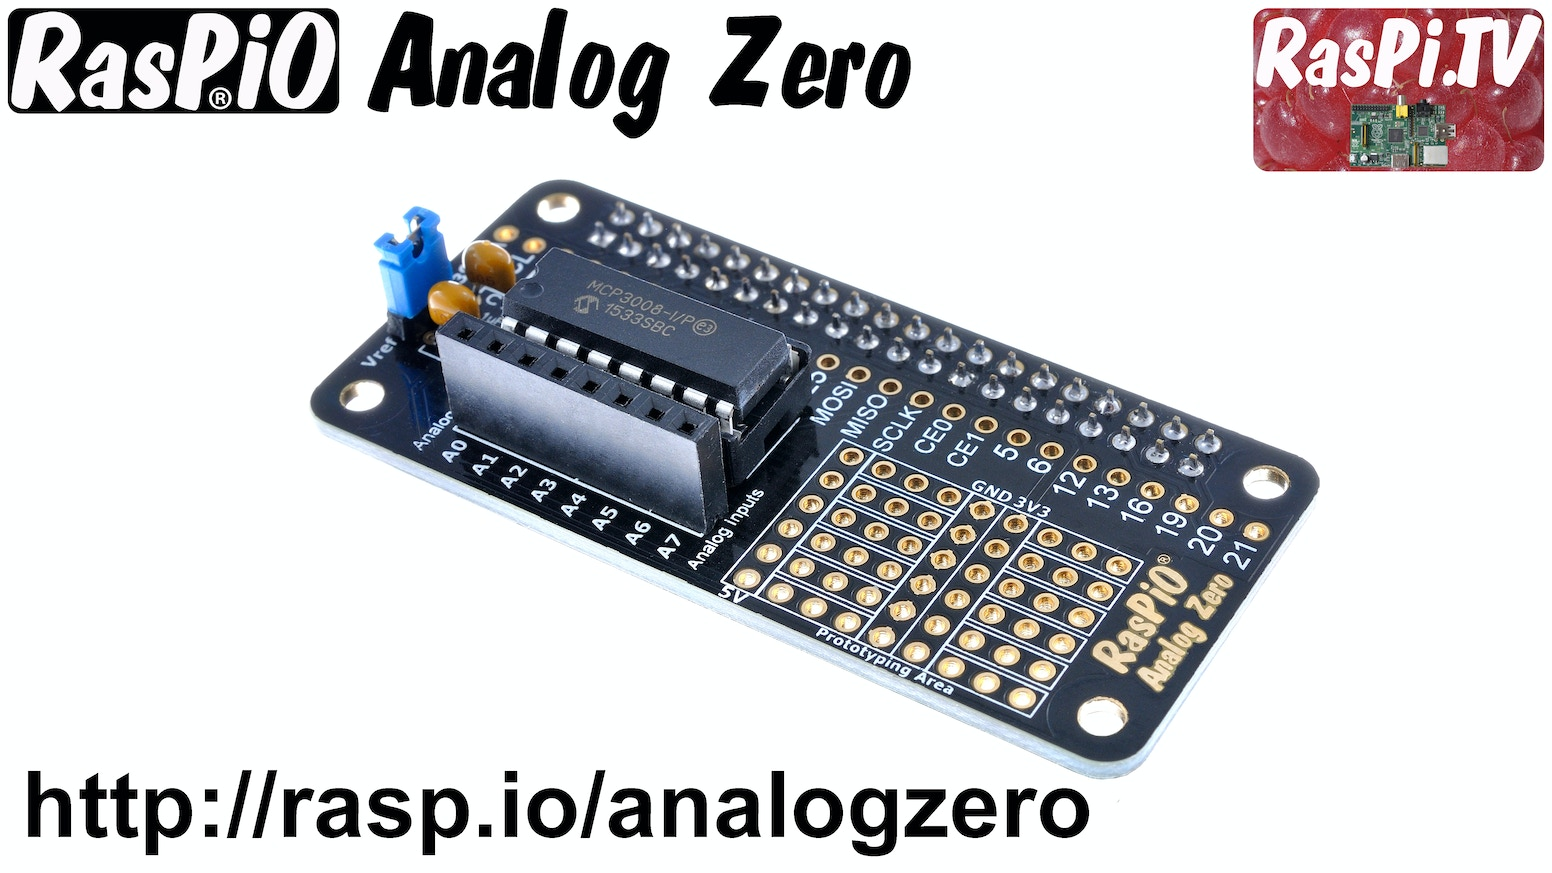 Raspio Analog Zero Read 8 Sensors At Once On Raspberry Pi By Alex The Project Is A Simple 12bit 8channel To Digital Converter With Gpio Make Weather Station Voltmeter Thermometer